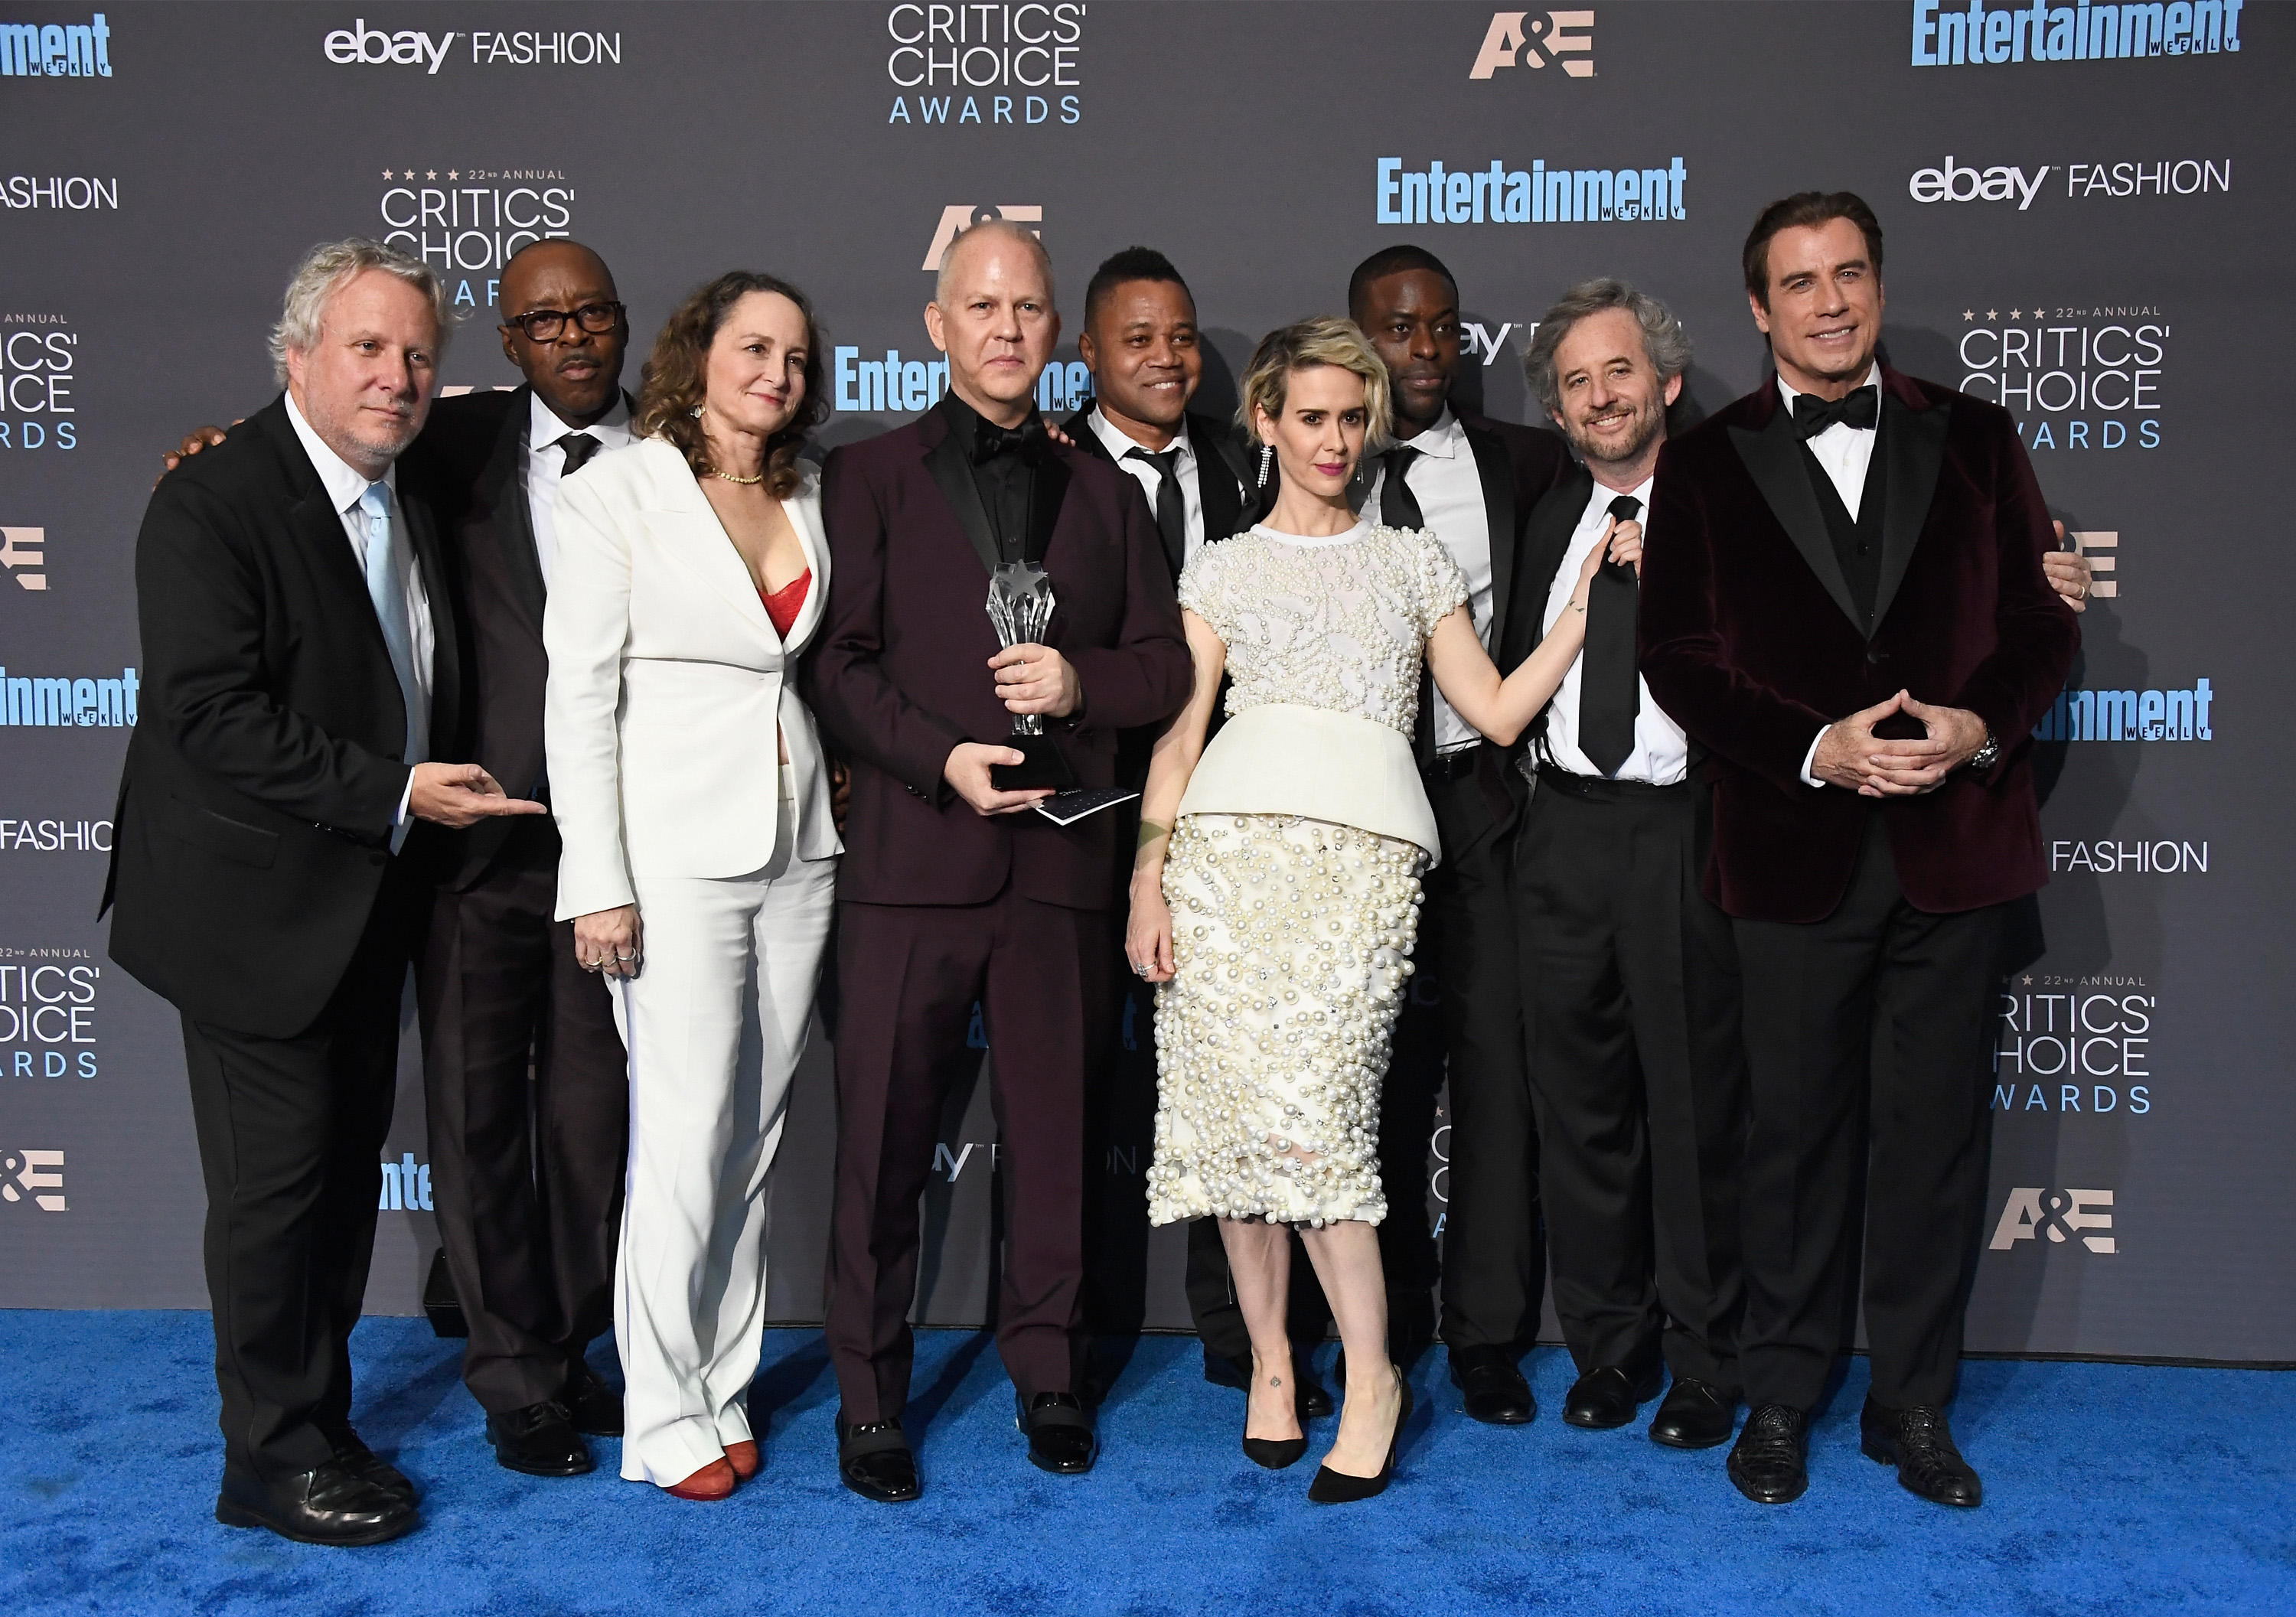 Critics Choice Awards >> 22nd Annual Critics Choice Awards Photo Gallery Critics Choice